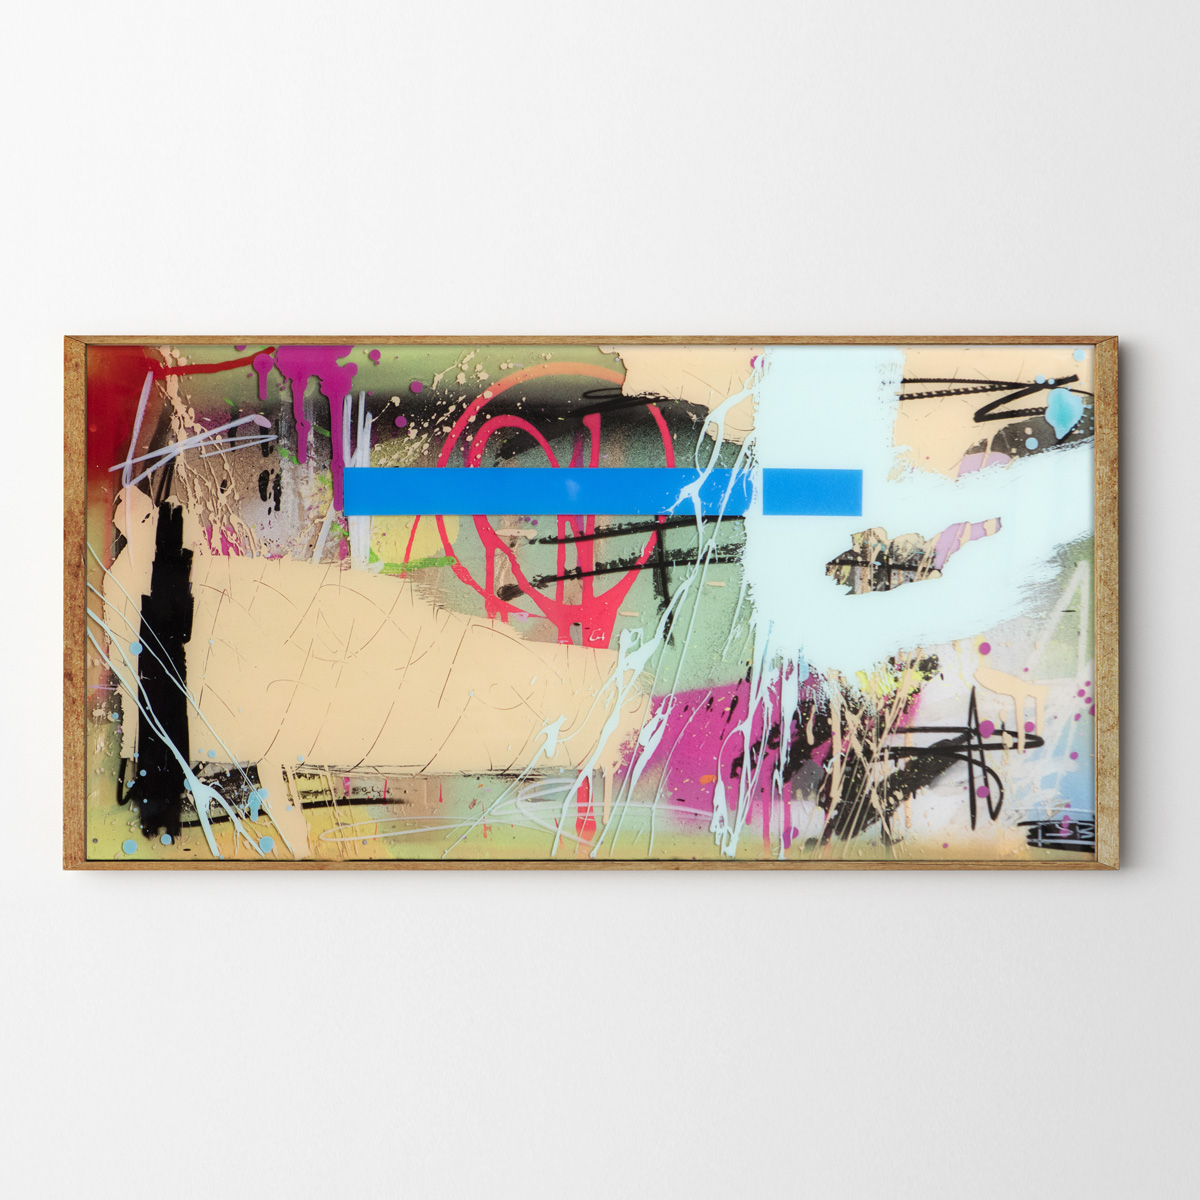 HEARTRISE mixed media with layered epoxy resin finish 12 x 24 inches JBR 095G.jpg